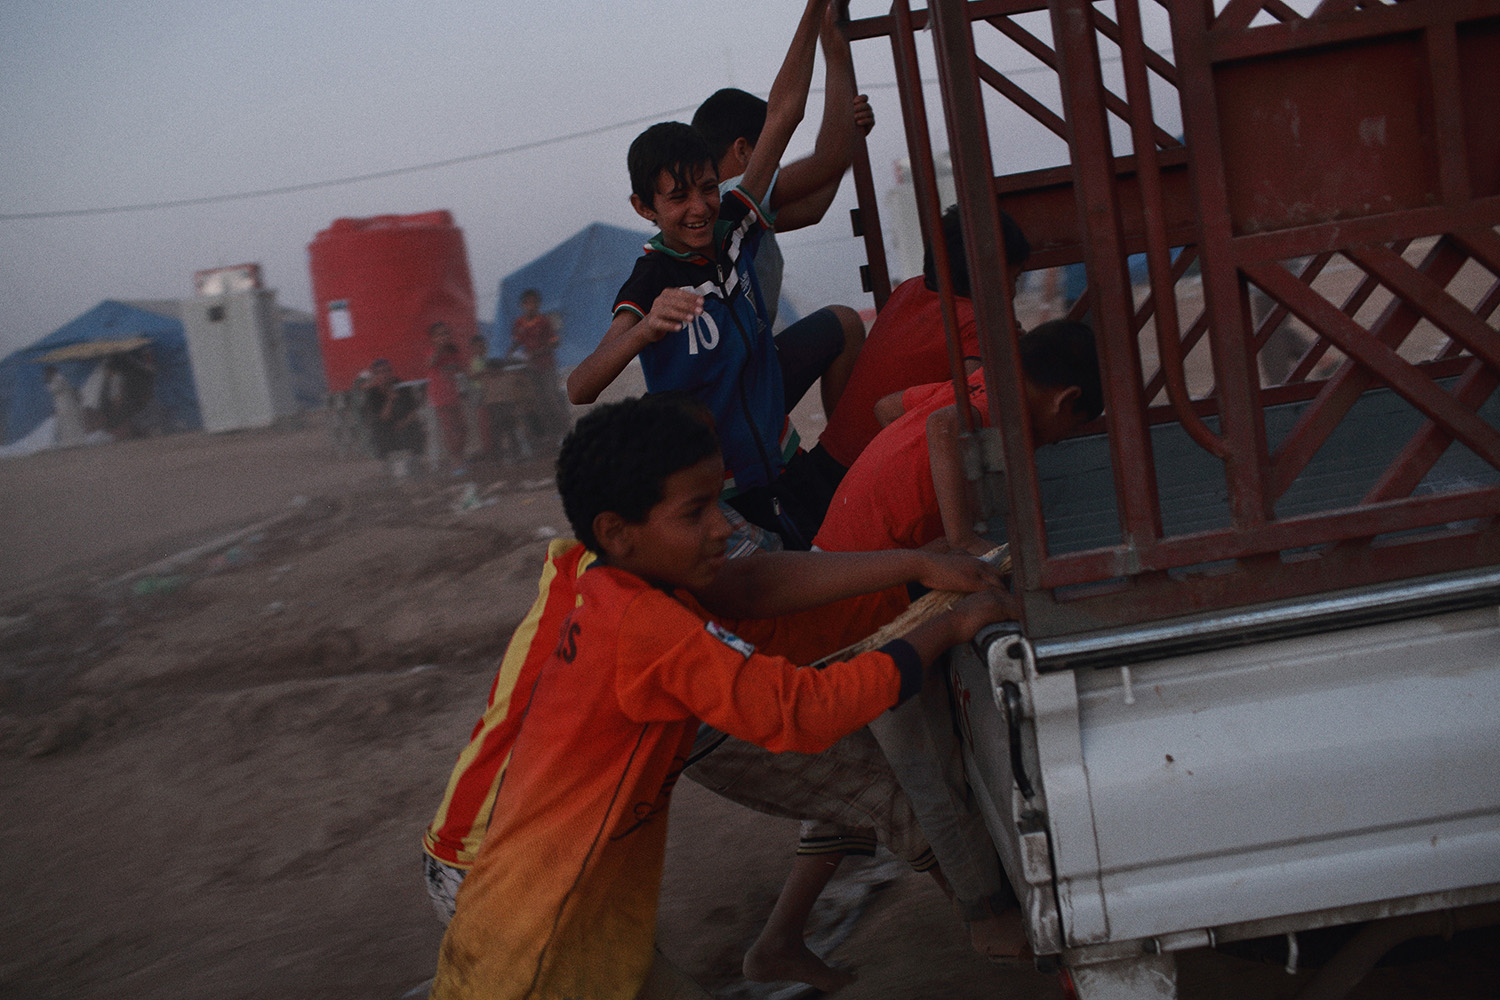 June 20, 2014. Collecting bread rolls from a truck becomes a game for children at the Khazar refugee camp between Erbil and Mosul where many residents from Mosul and it's surrounds have found refuge following the city's takeover by Islamist militants of the Islamic State of Iraq and the Levant (ISIL) group.